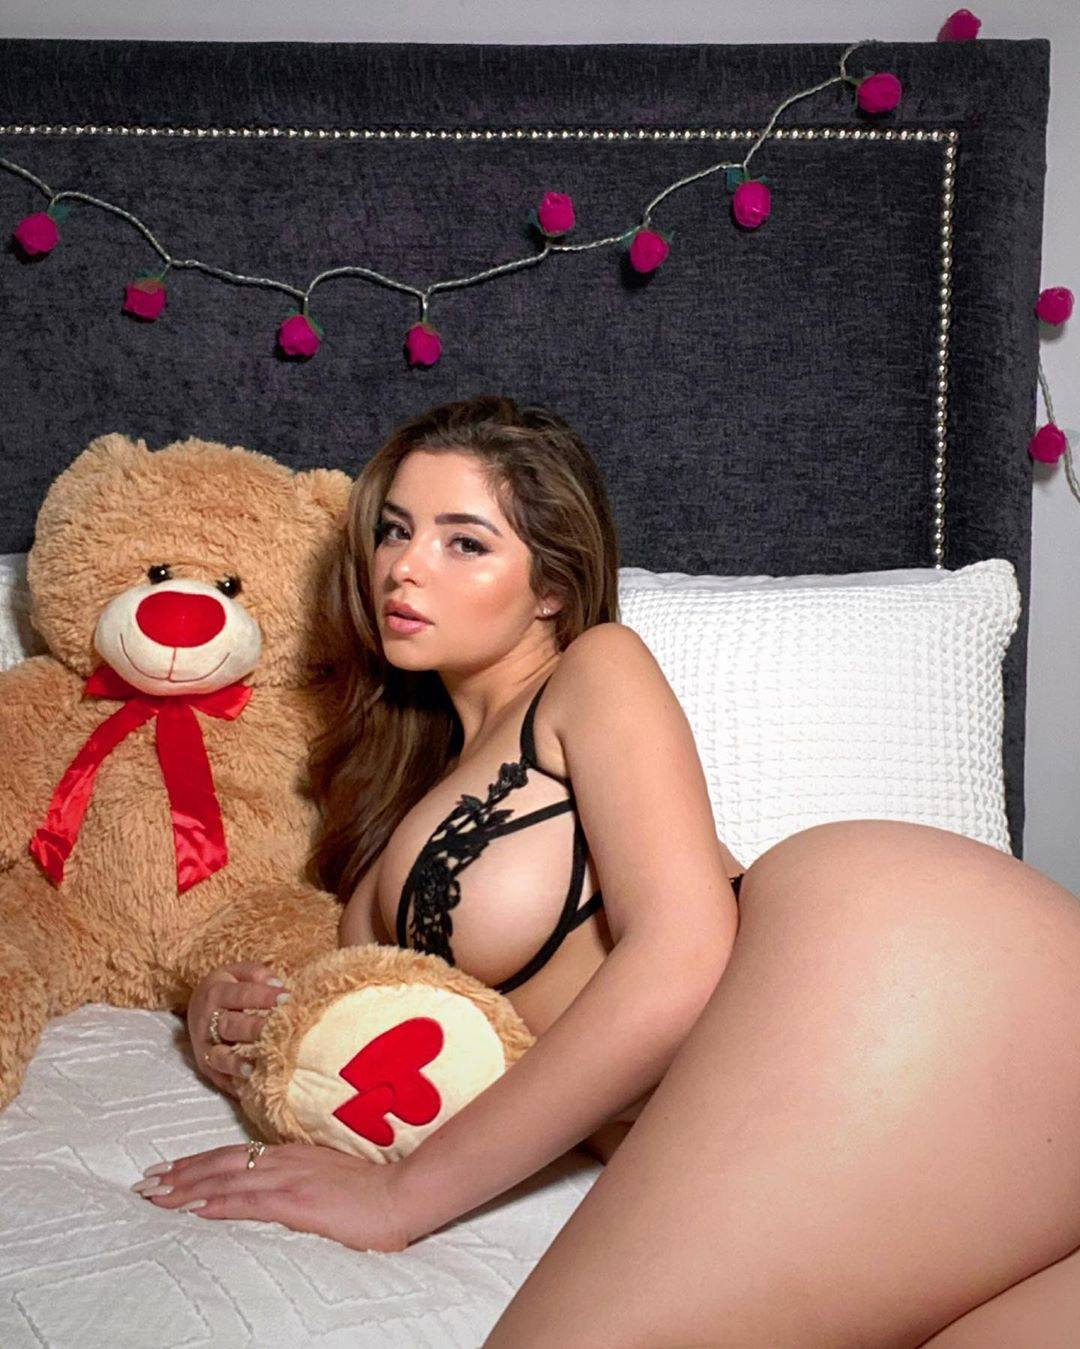 Demi Rose Mawby Sexy In Revealing Lingerie